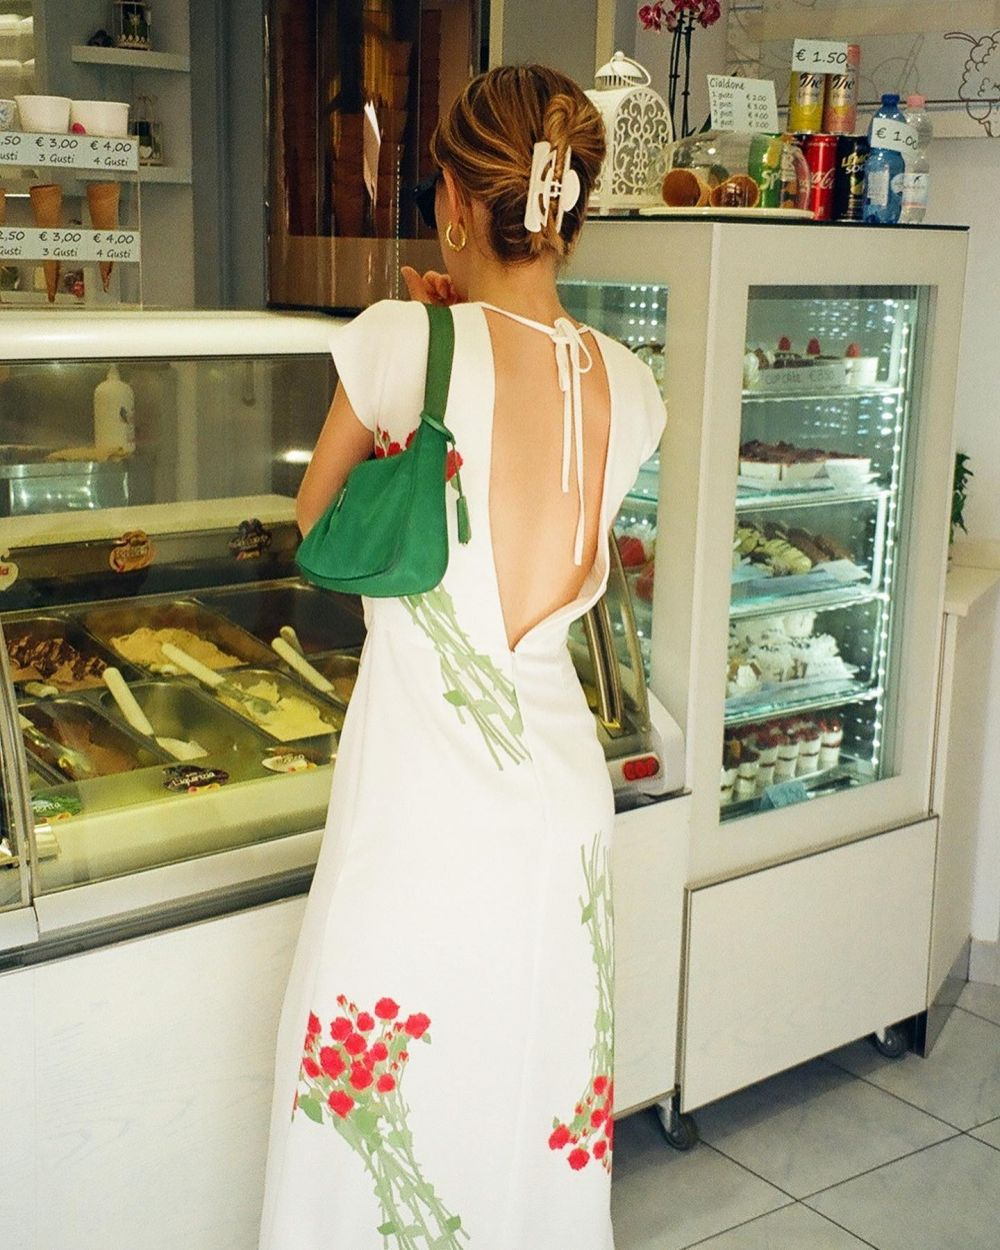 SOFIE ORDERING GELATO ~ WEARING DRESS ANNE.🍦🍧  Three of my friends and I visited Como. We packed only one suitcase filled with BERNADETTE and off we went. We strutted down the streets of Bellagio with our bags jam-packed with floral dresses and silks.   Changing at every corner, capturing our florals in the beauty of Northern Italy. It was so fun to see the girls' take on the Summer collection. Each of them styled the pieces differently, putting their own spin on BERNADETTE.